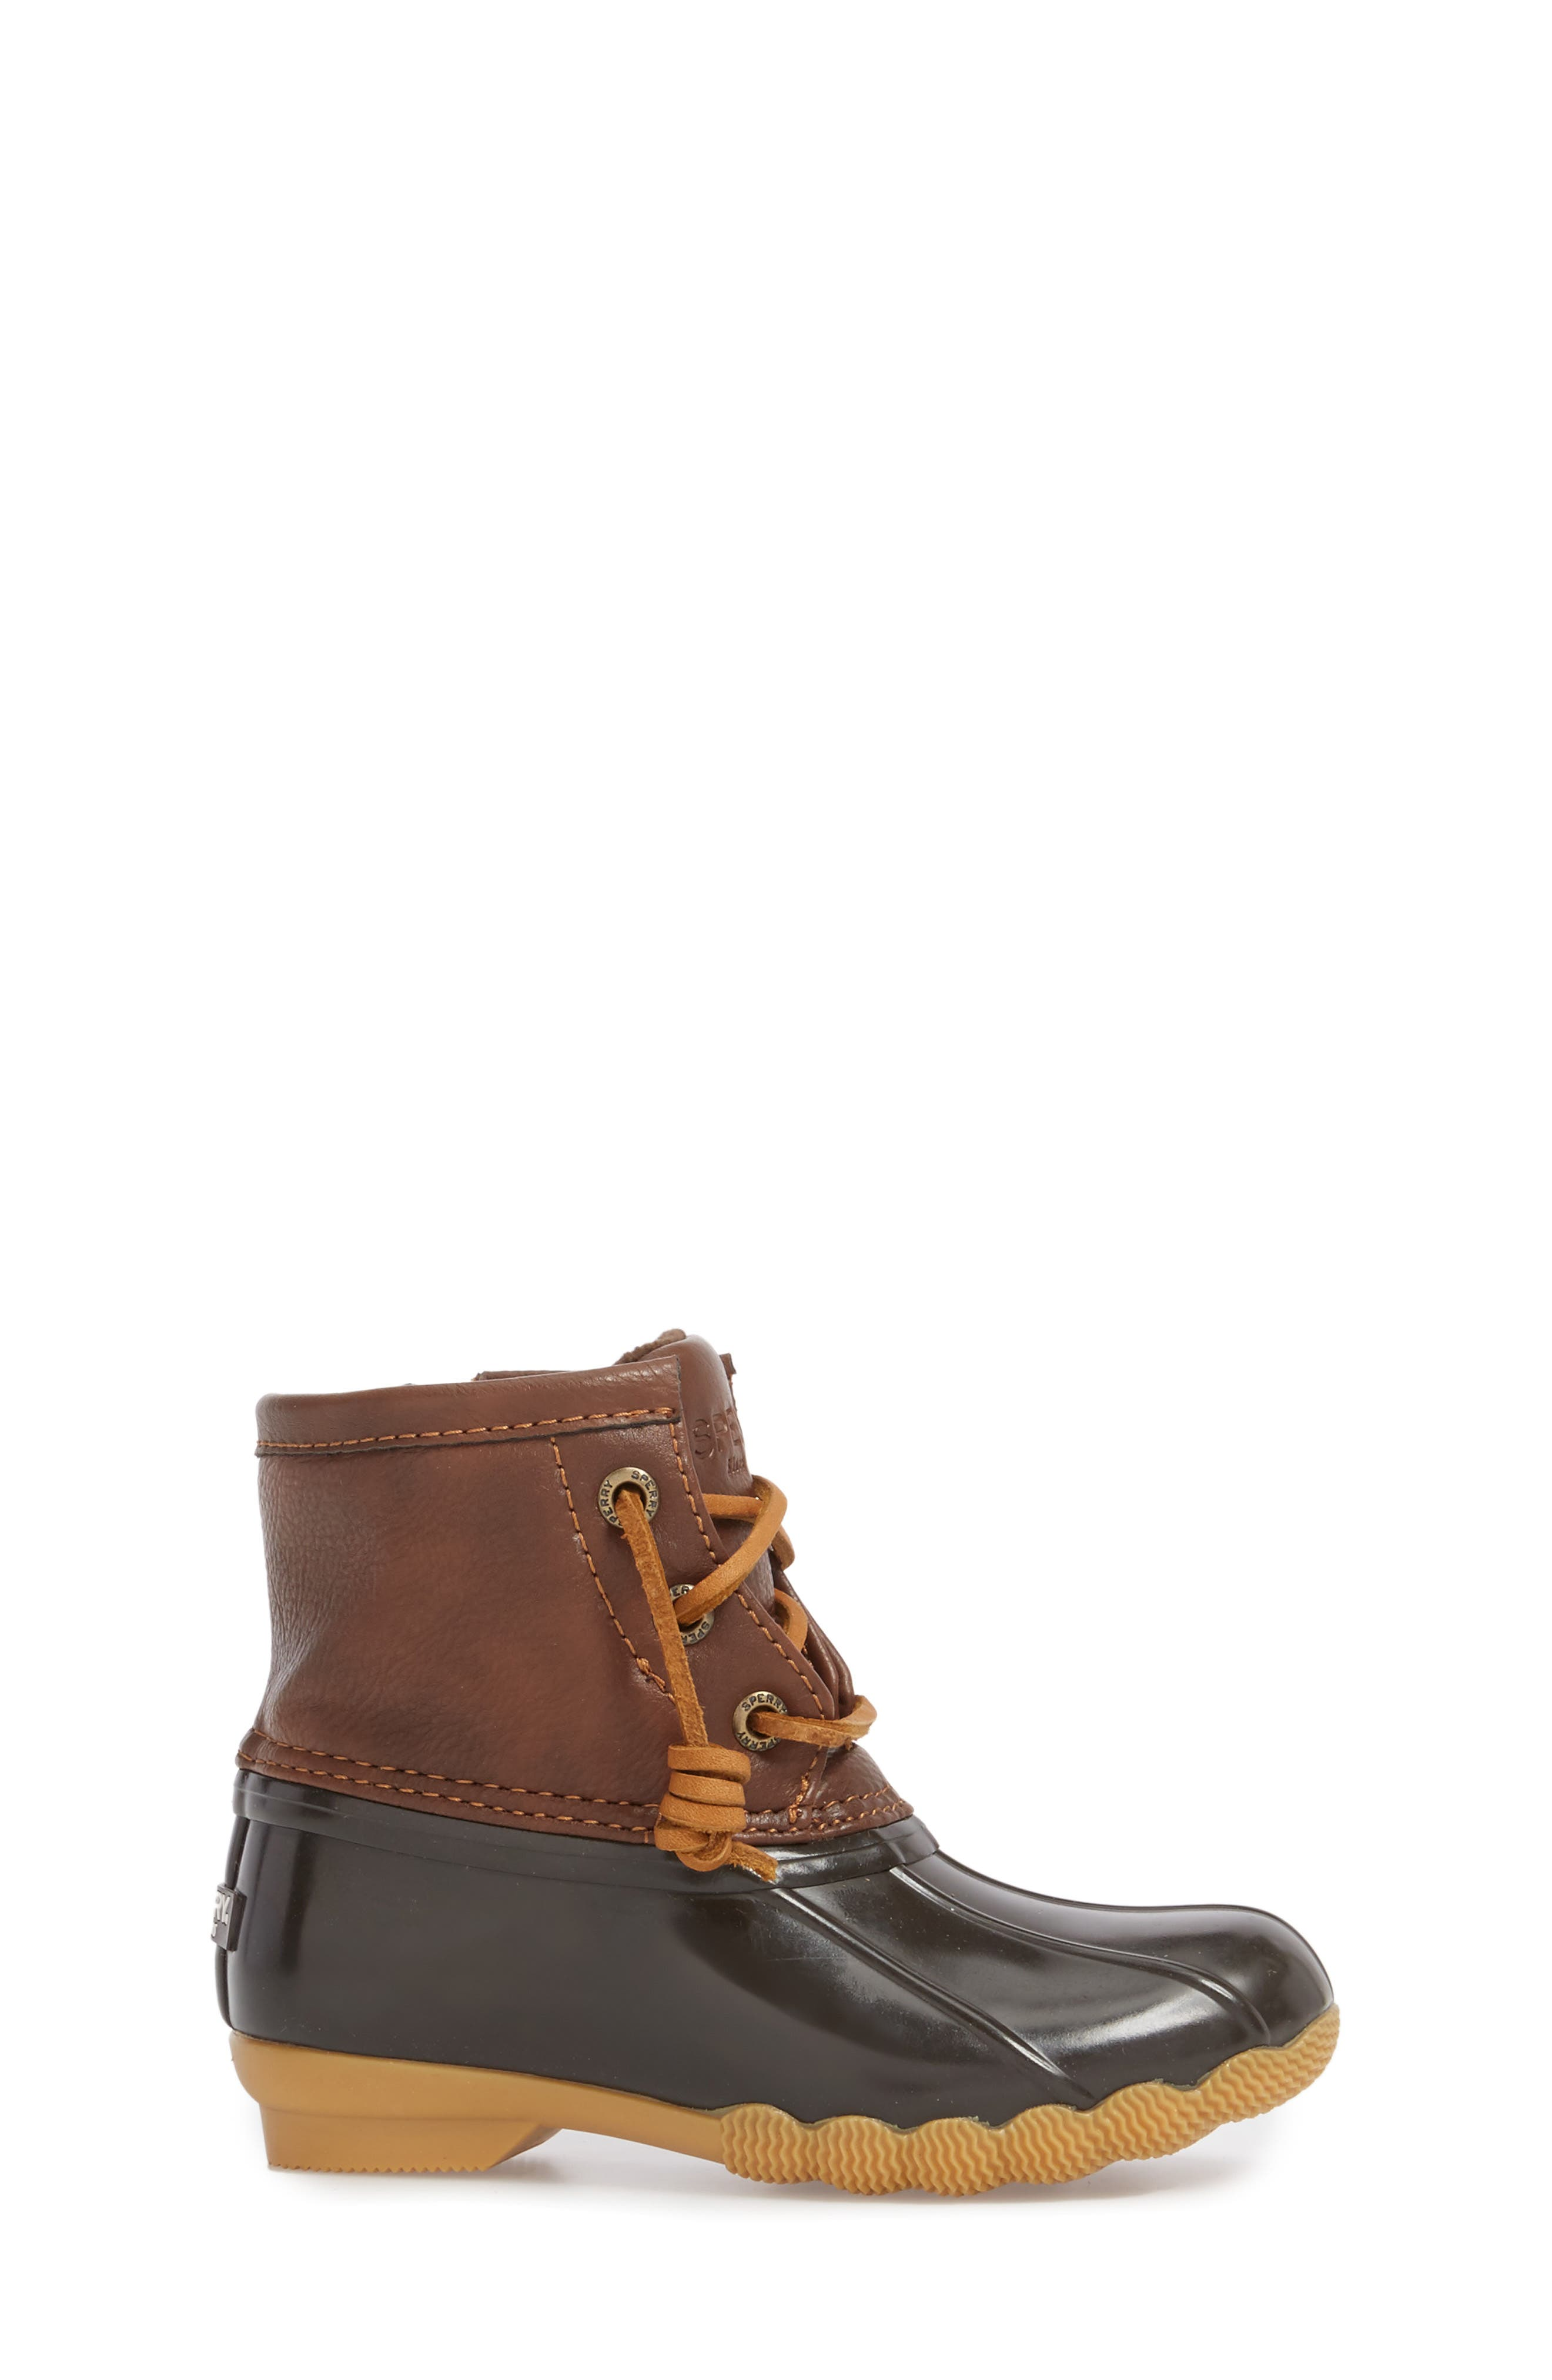 Saltwater Duck Boot,                             Alternate thumbnail 3, color,                             BROWN/ BROWN